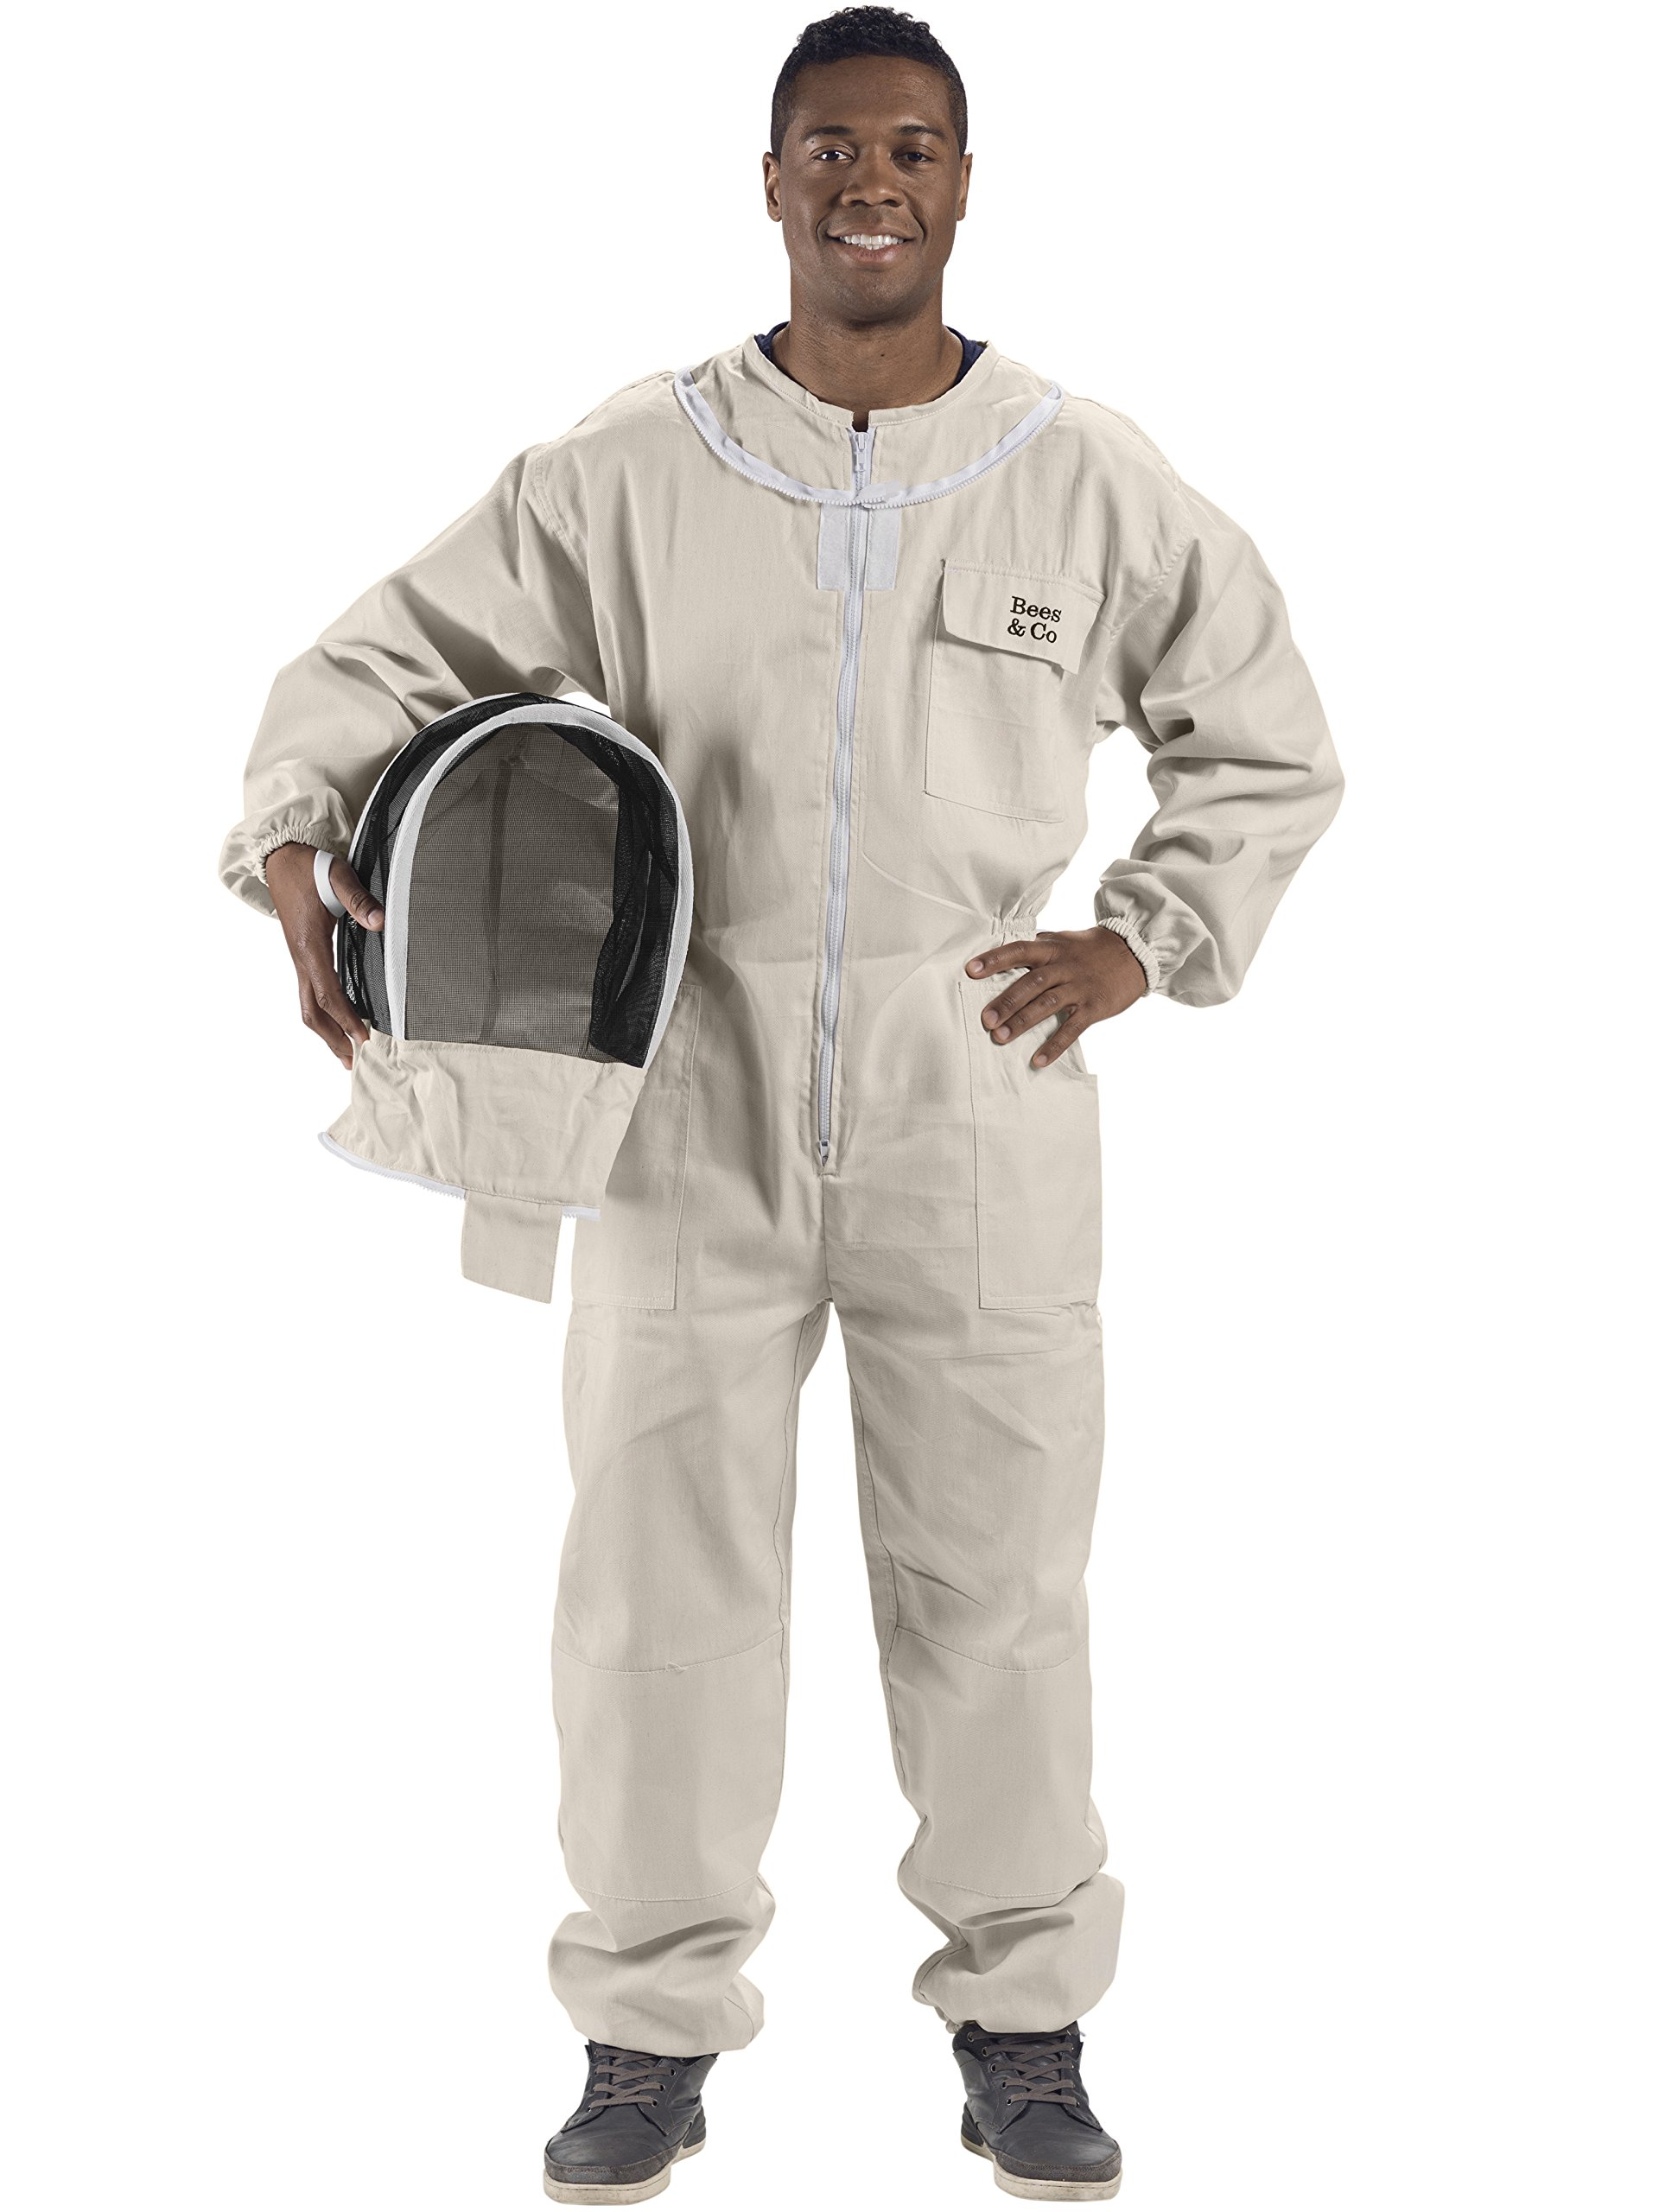 Bees & Co U74 Natural Cotton Beekeeper Suit with Fencing Veil